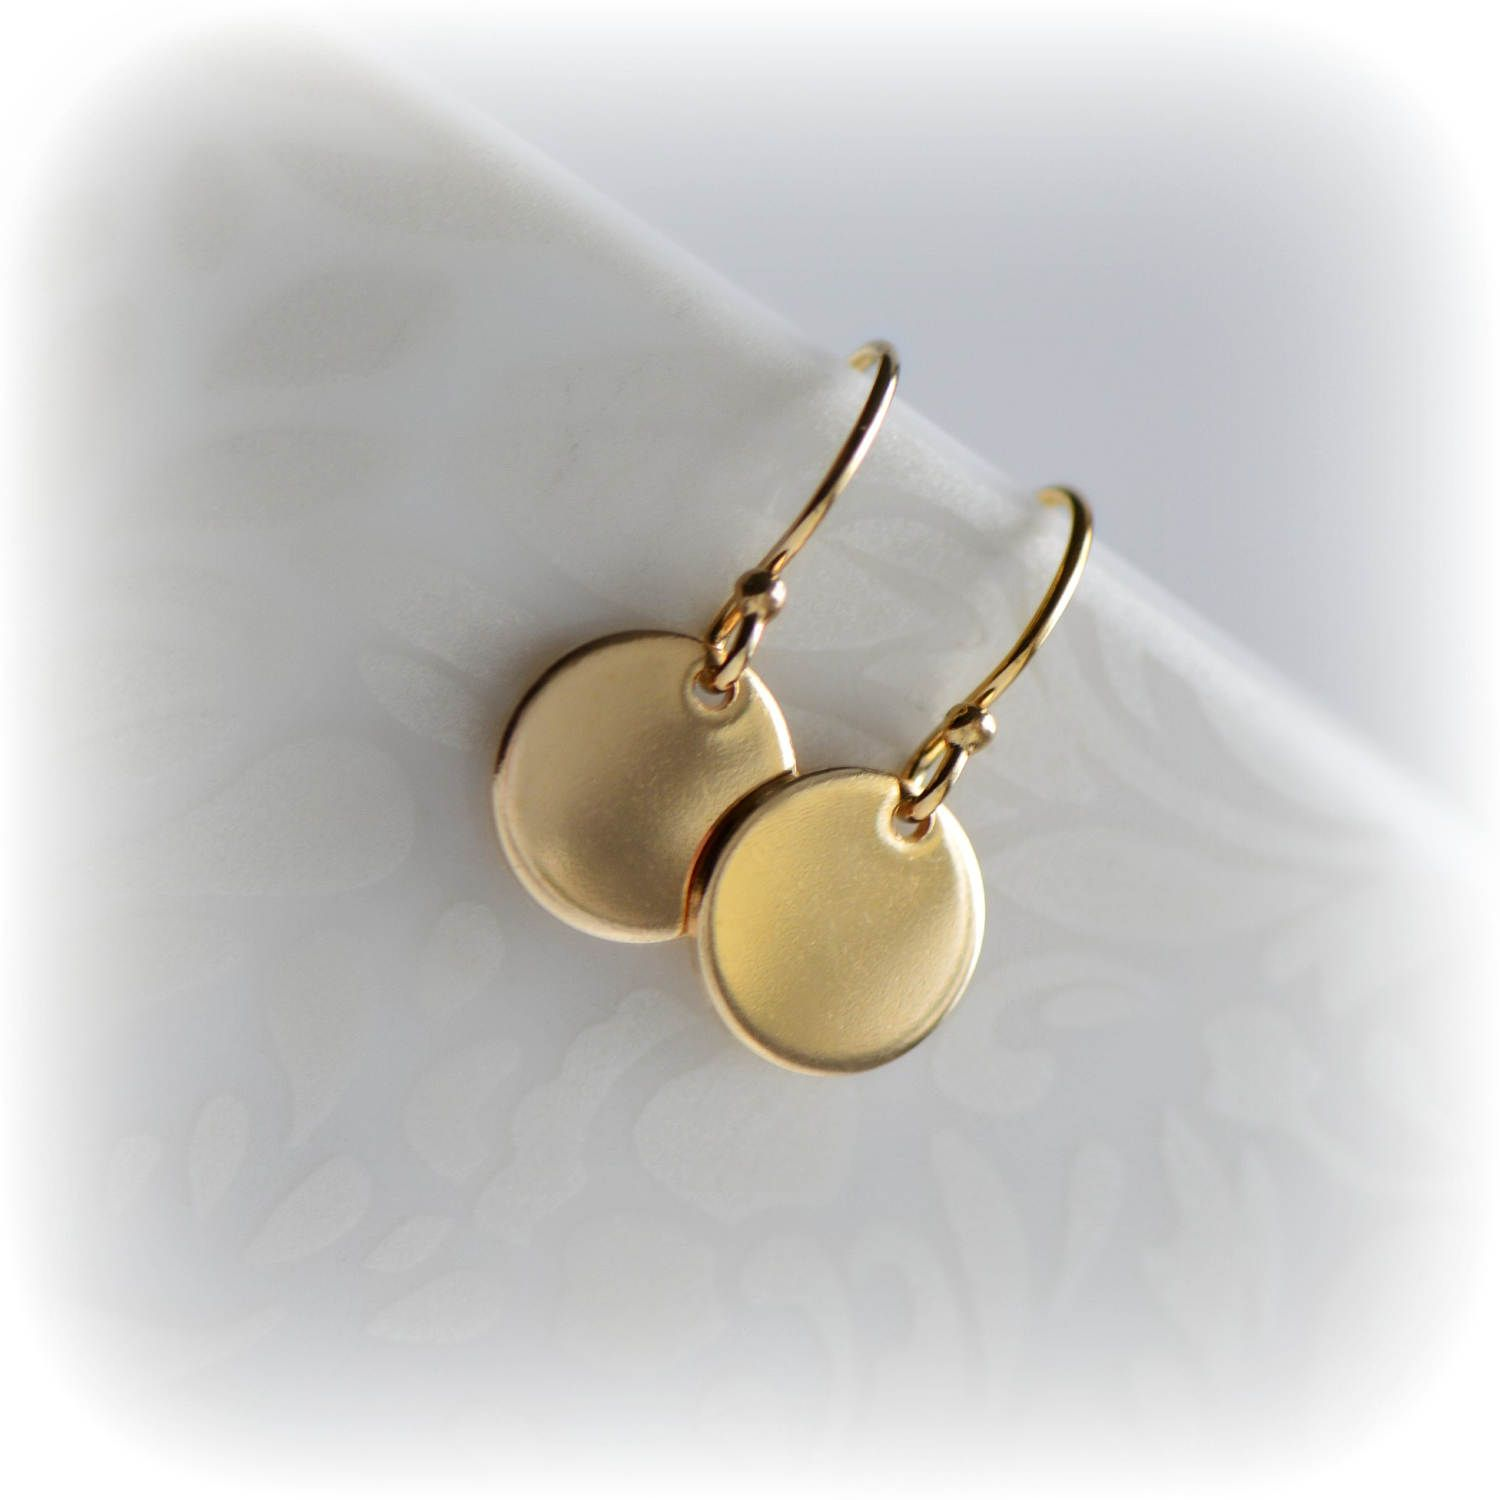 simple item yuetong gold pic earrings cnuti shopping bead china get jewelry guides quotations international